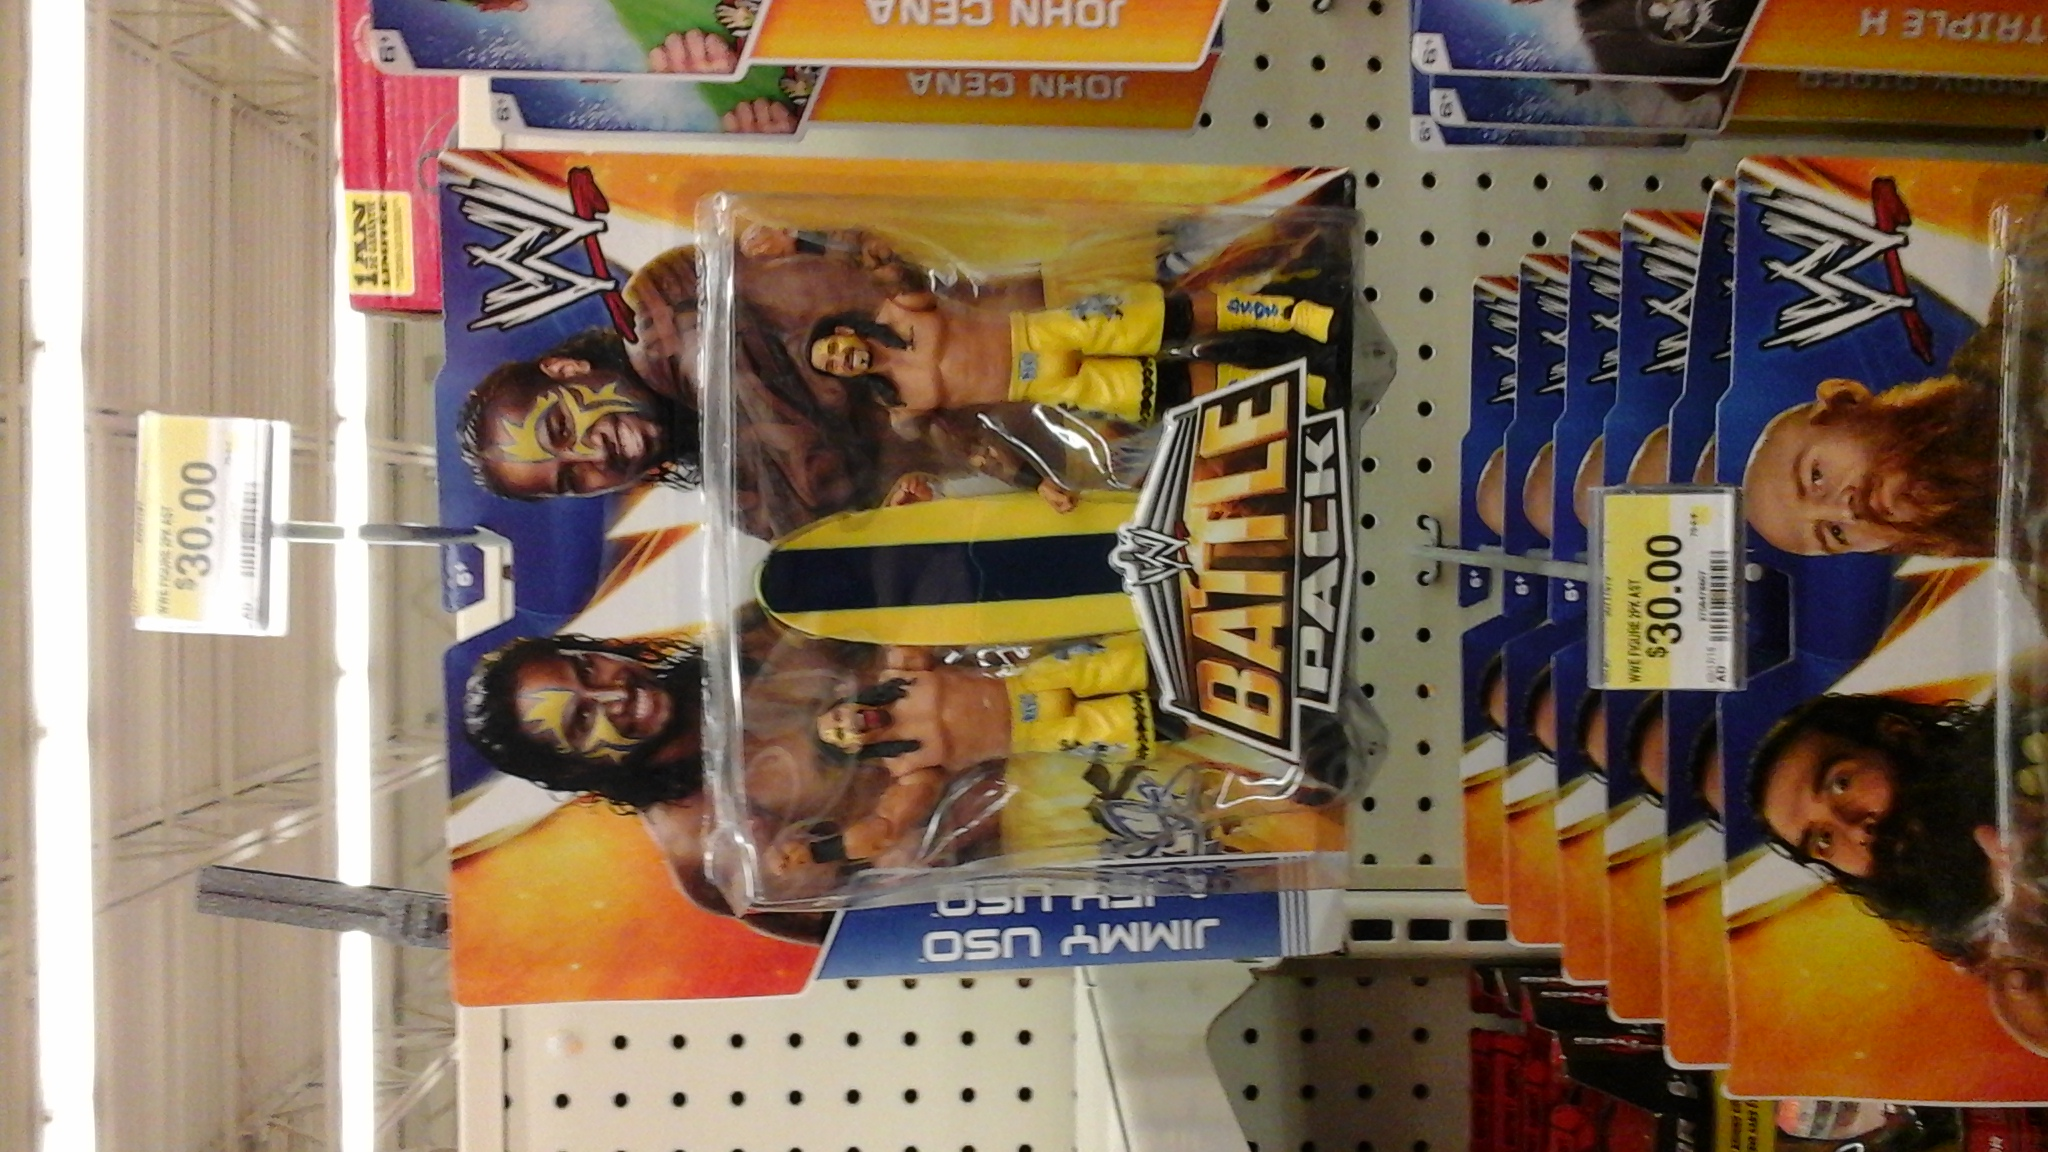 WWE Usos surifng figures